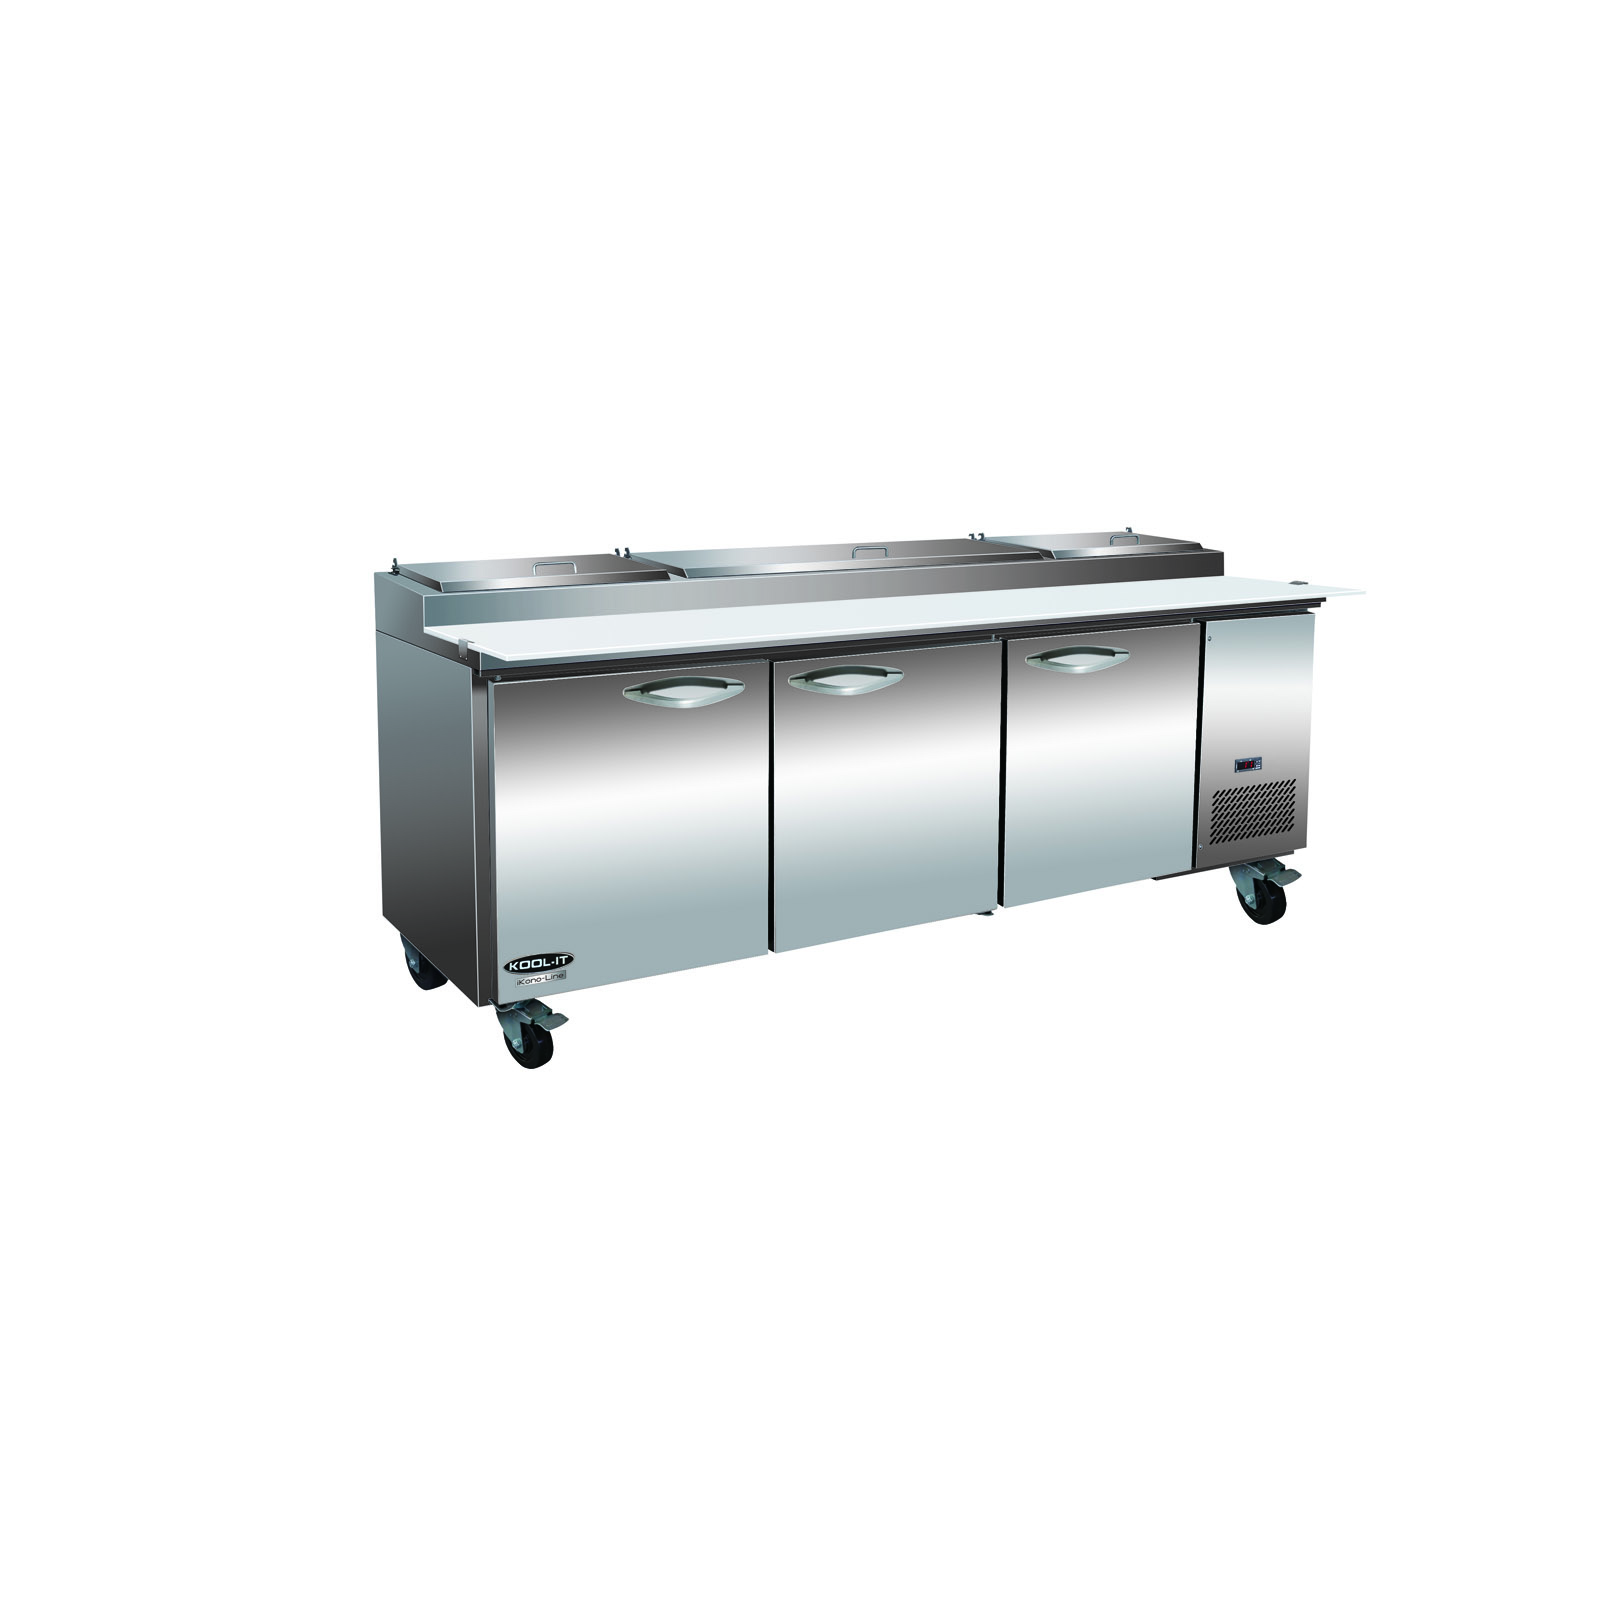 MVP IPP94-2D refrigerated counter, pizza prep table